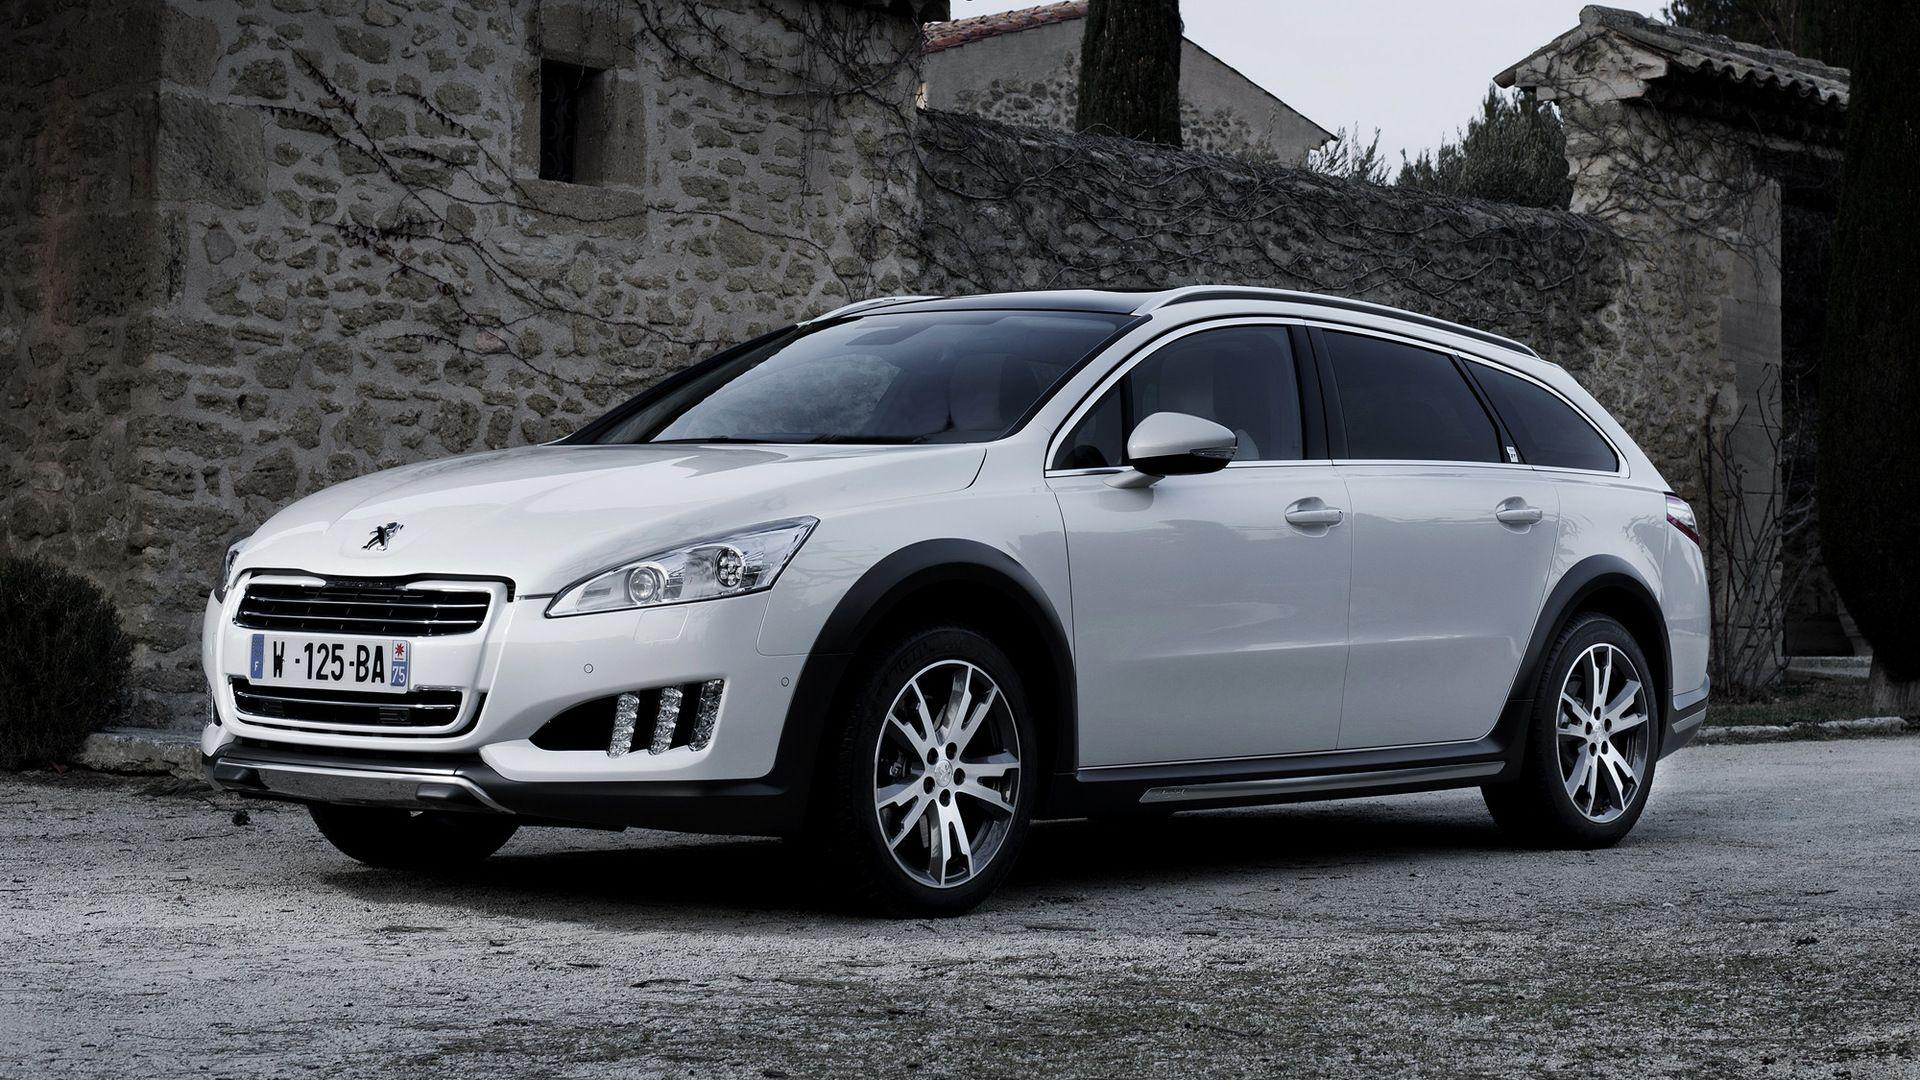 2012 Peugeot 508 RXH Full HD Wallpapers and Backgrounds Image